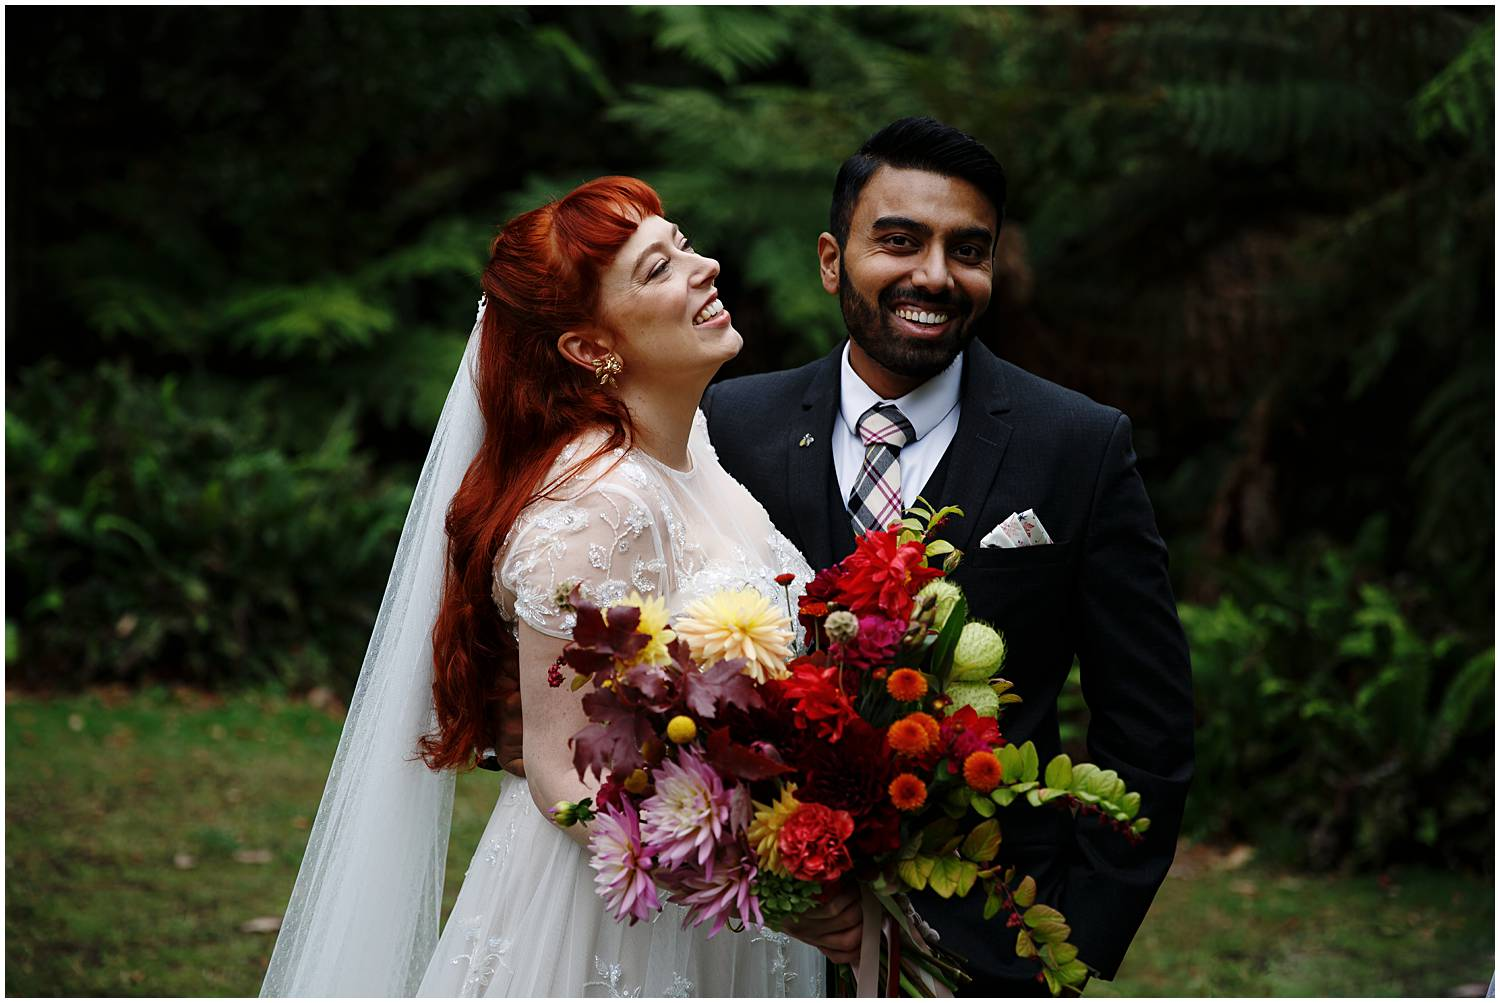 colourful autumn wedding melbourne010.jpg